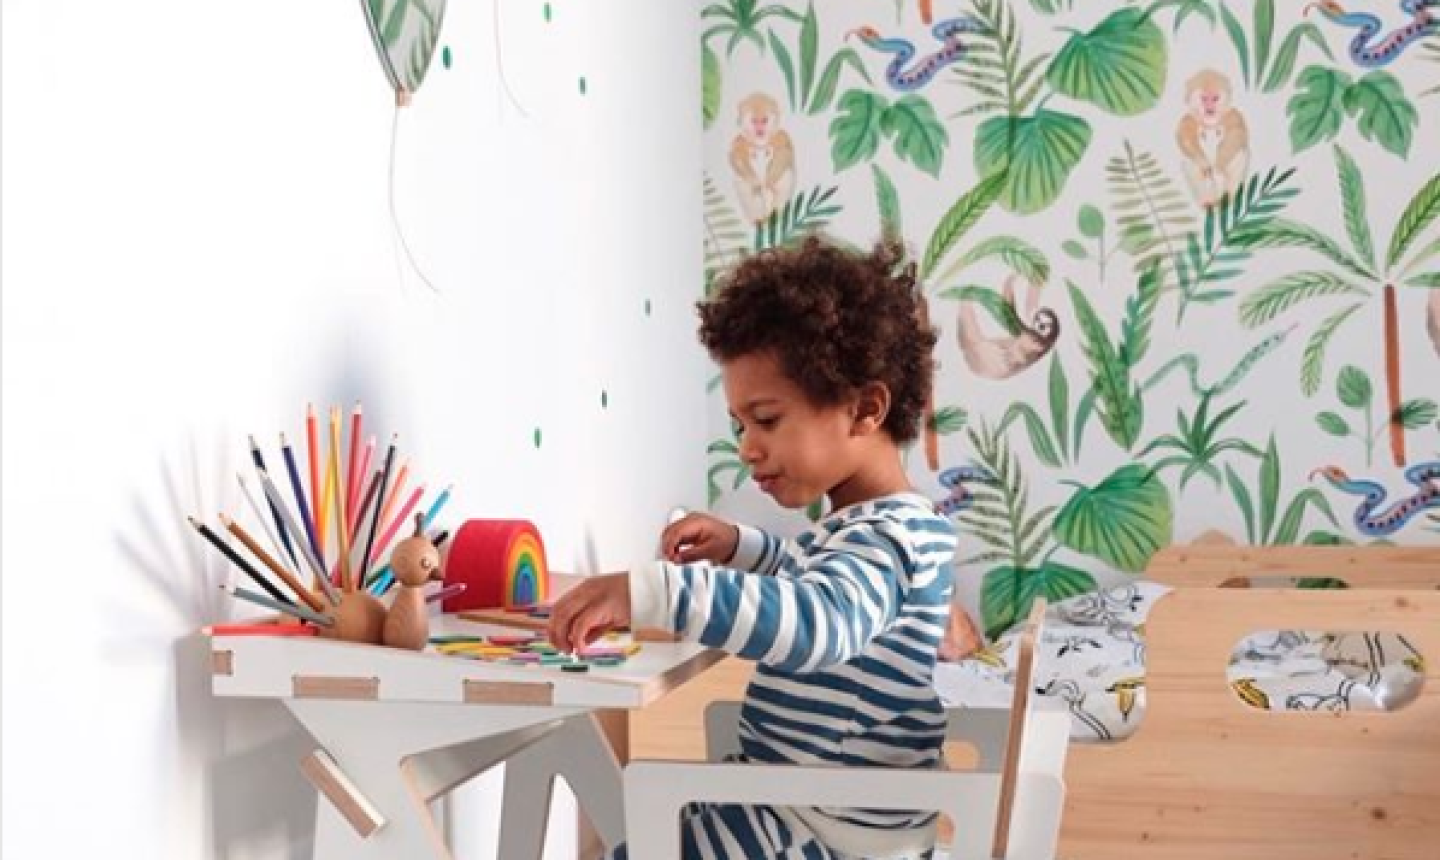 kid crafting with wallpaper in background